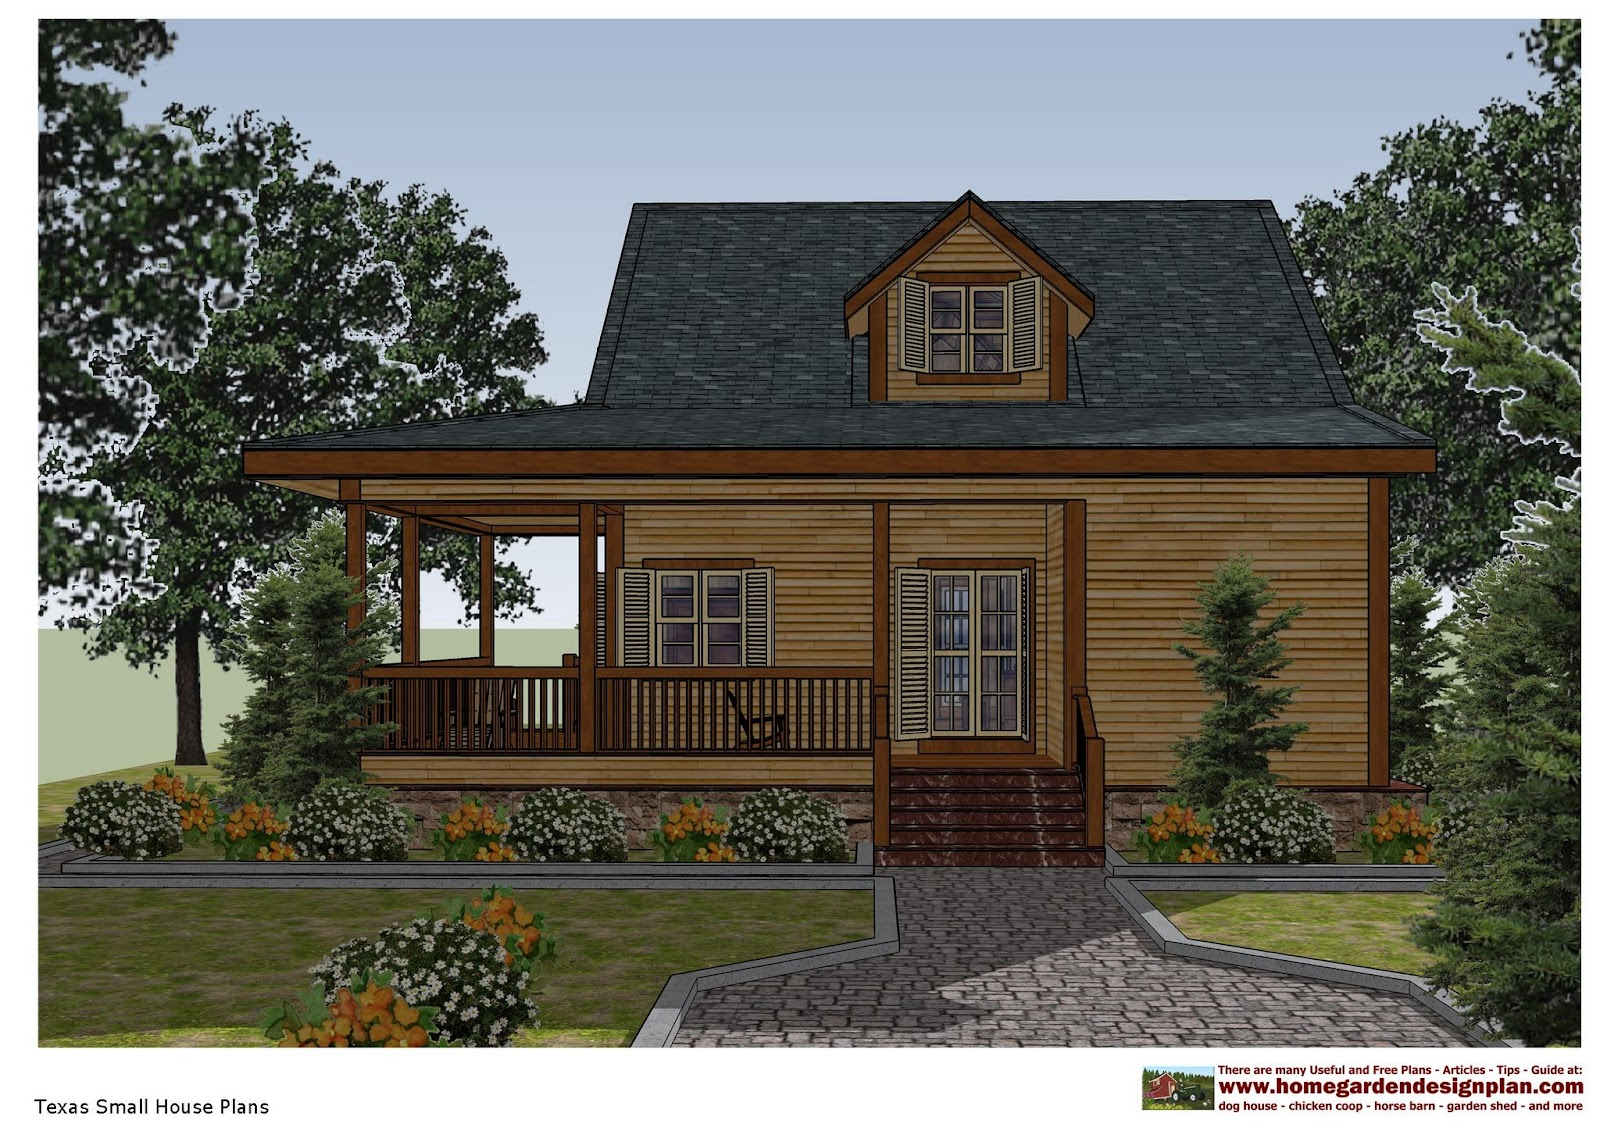 Tiny Home Designs: Home Garden Plans: SH100